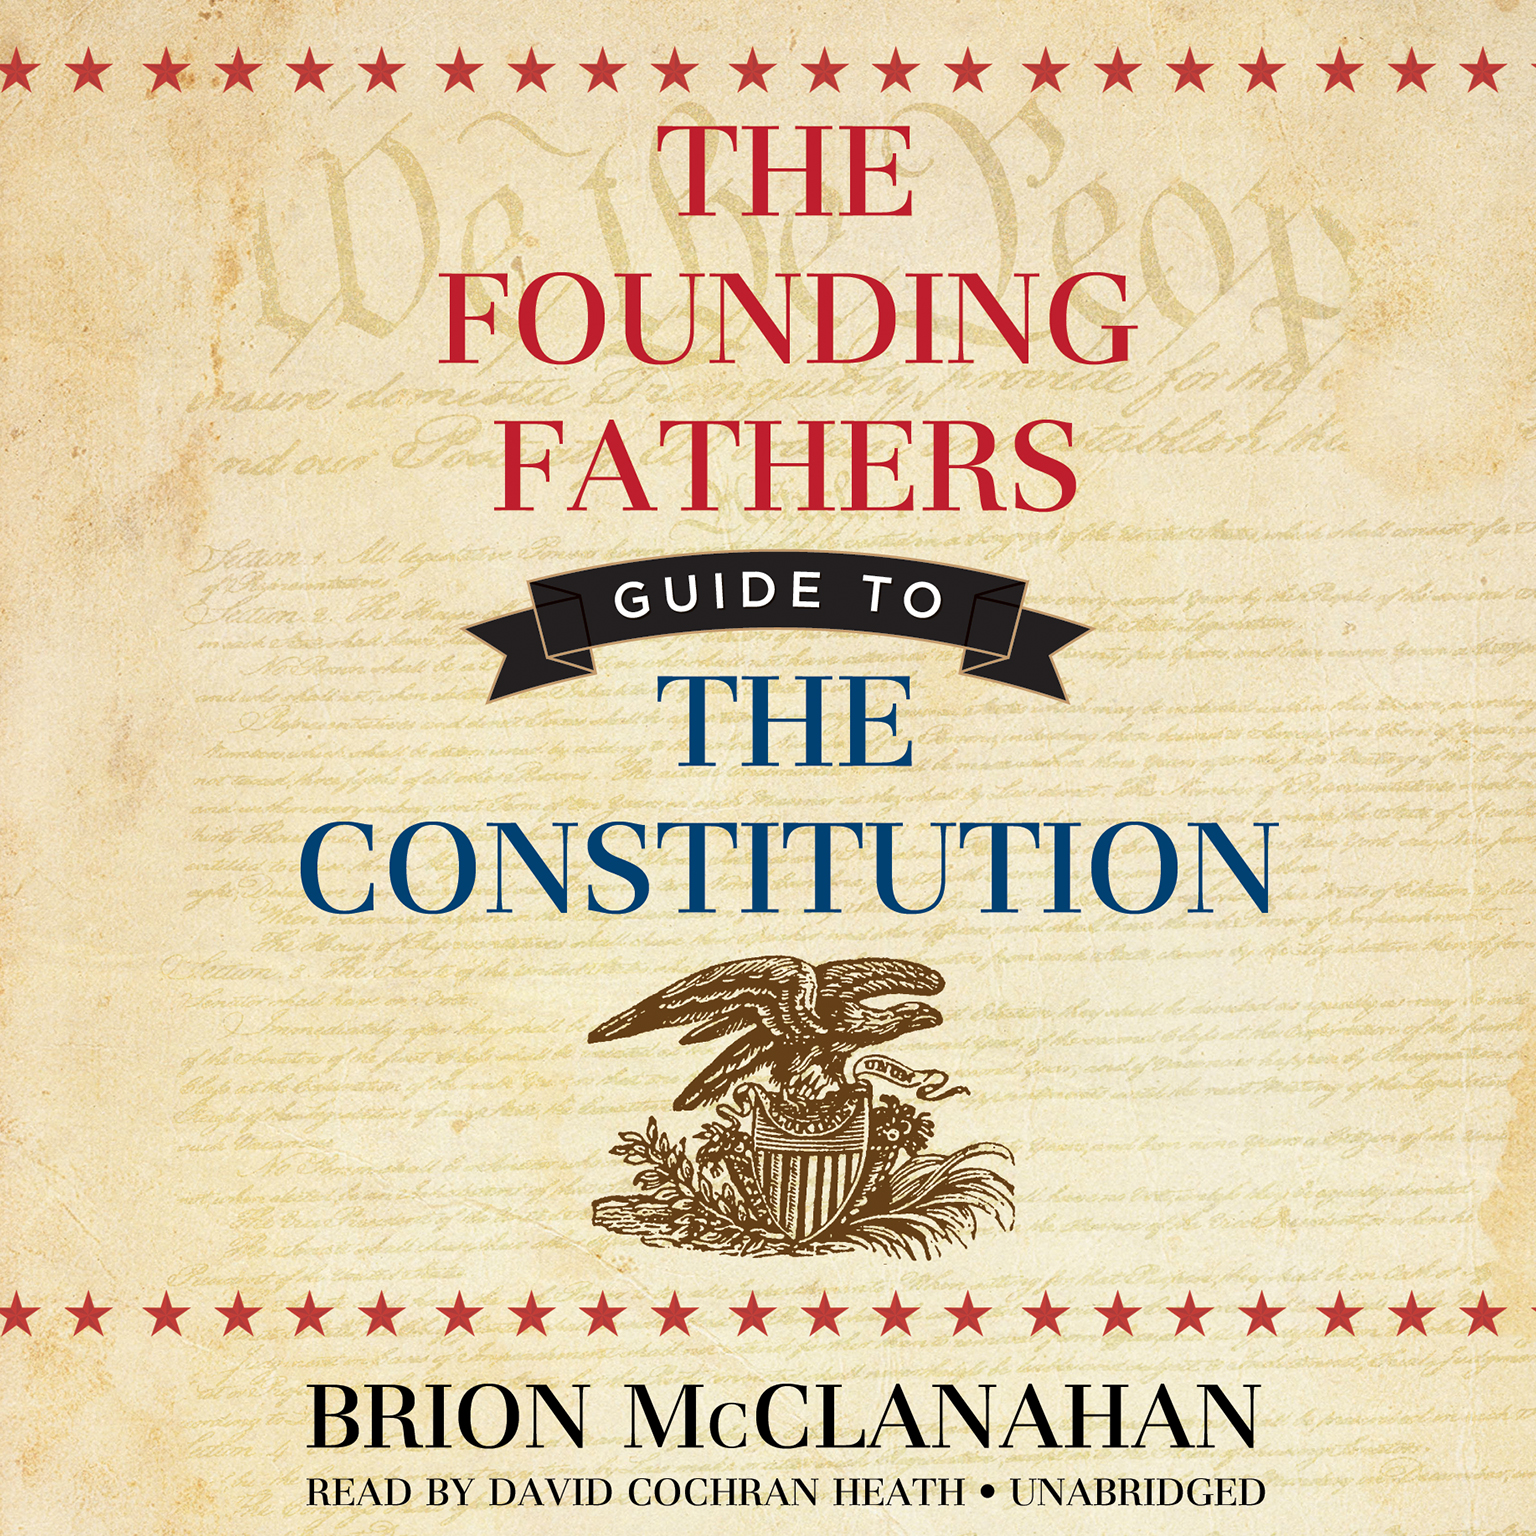 Printable The Founding Fathers' Guide to the Constitution Audiobook Cover Art